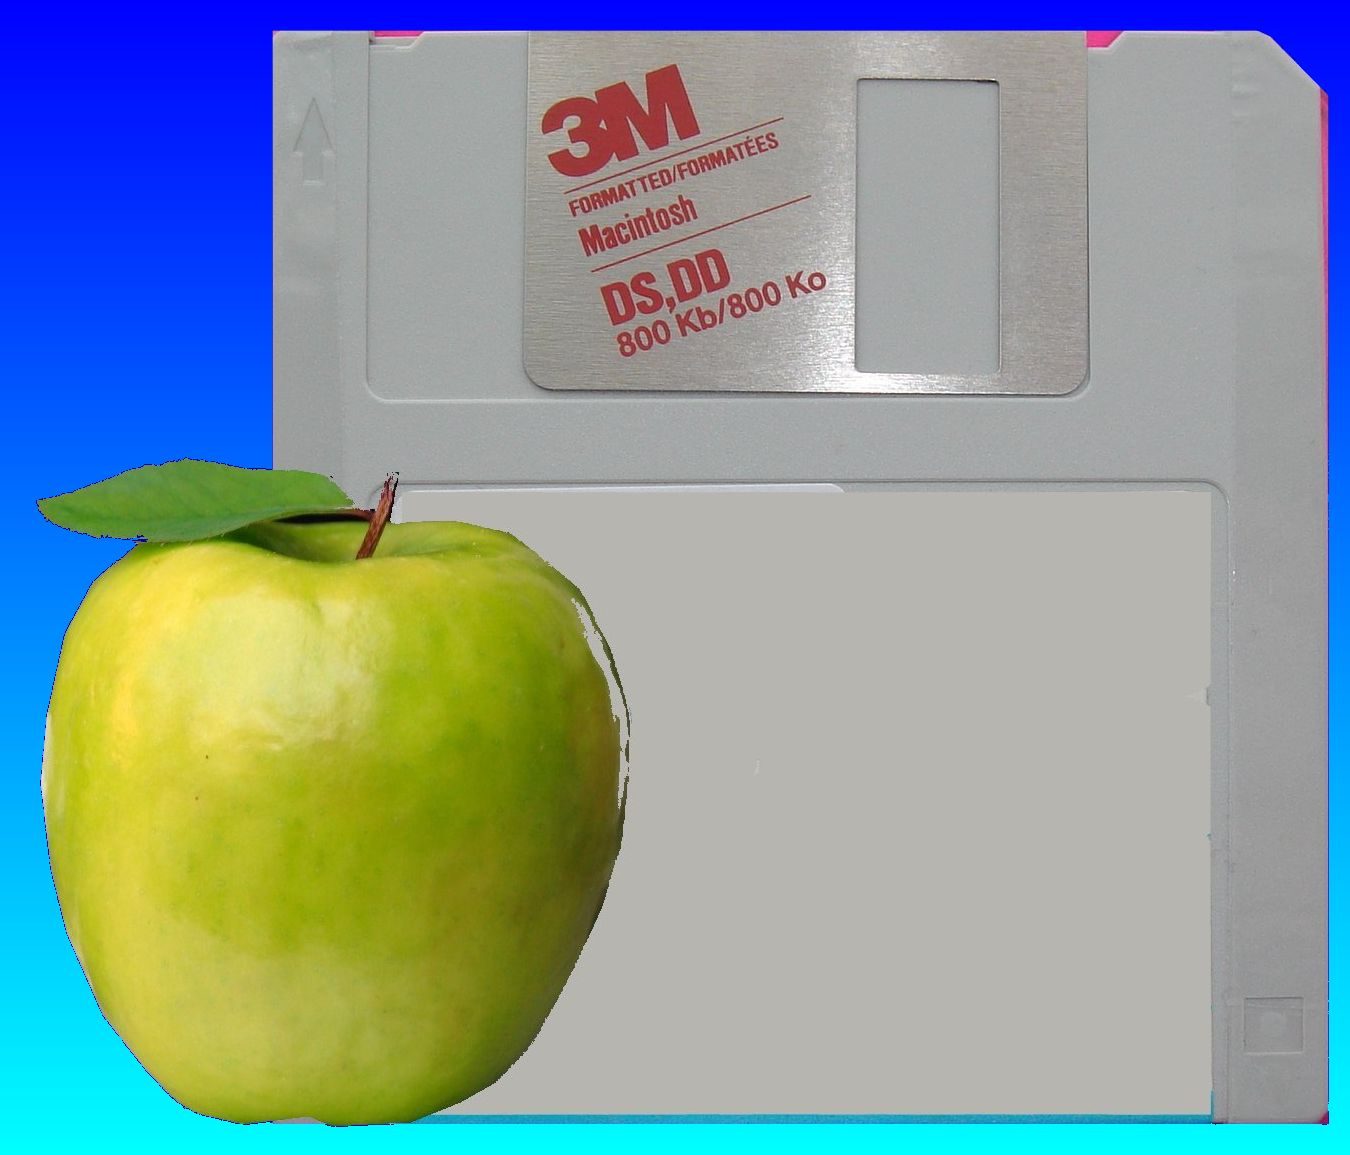 mac 3.5 inch floppy disk from apple computer awaiting file conversion